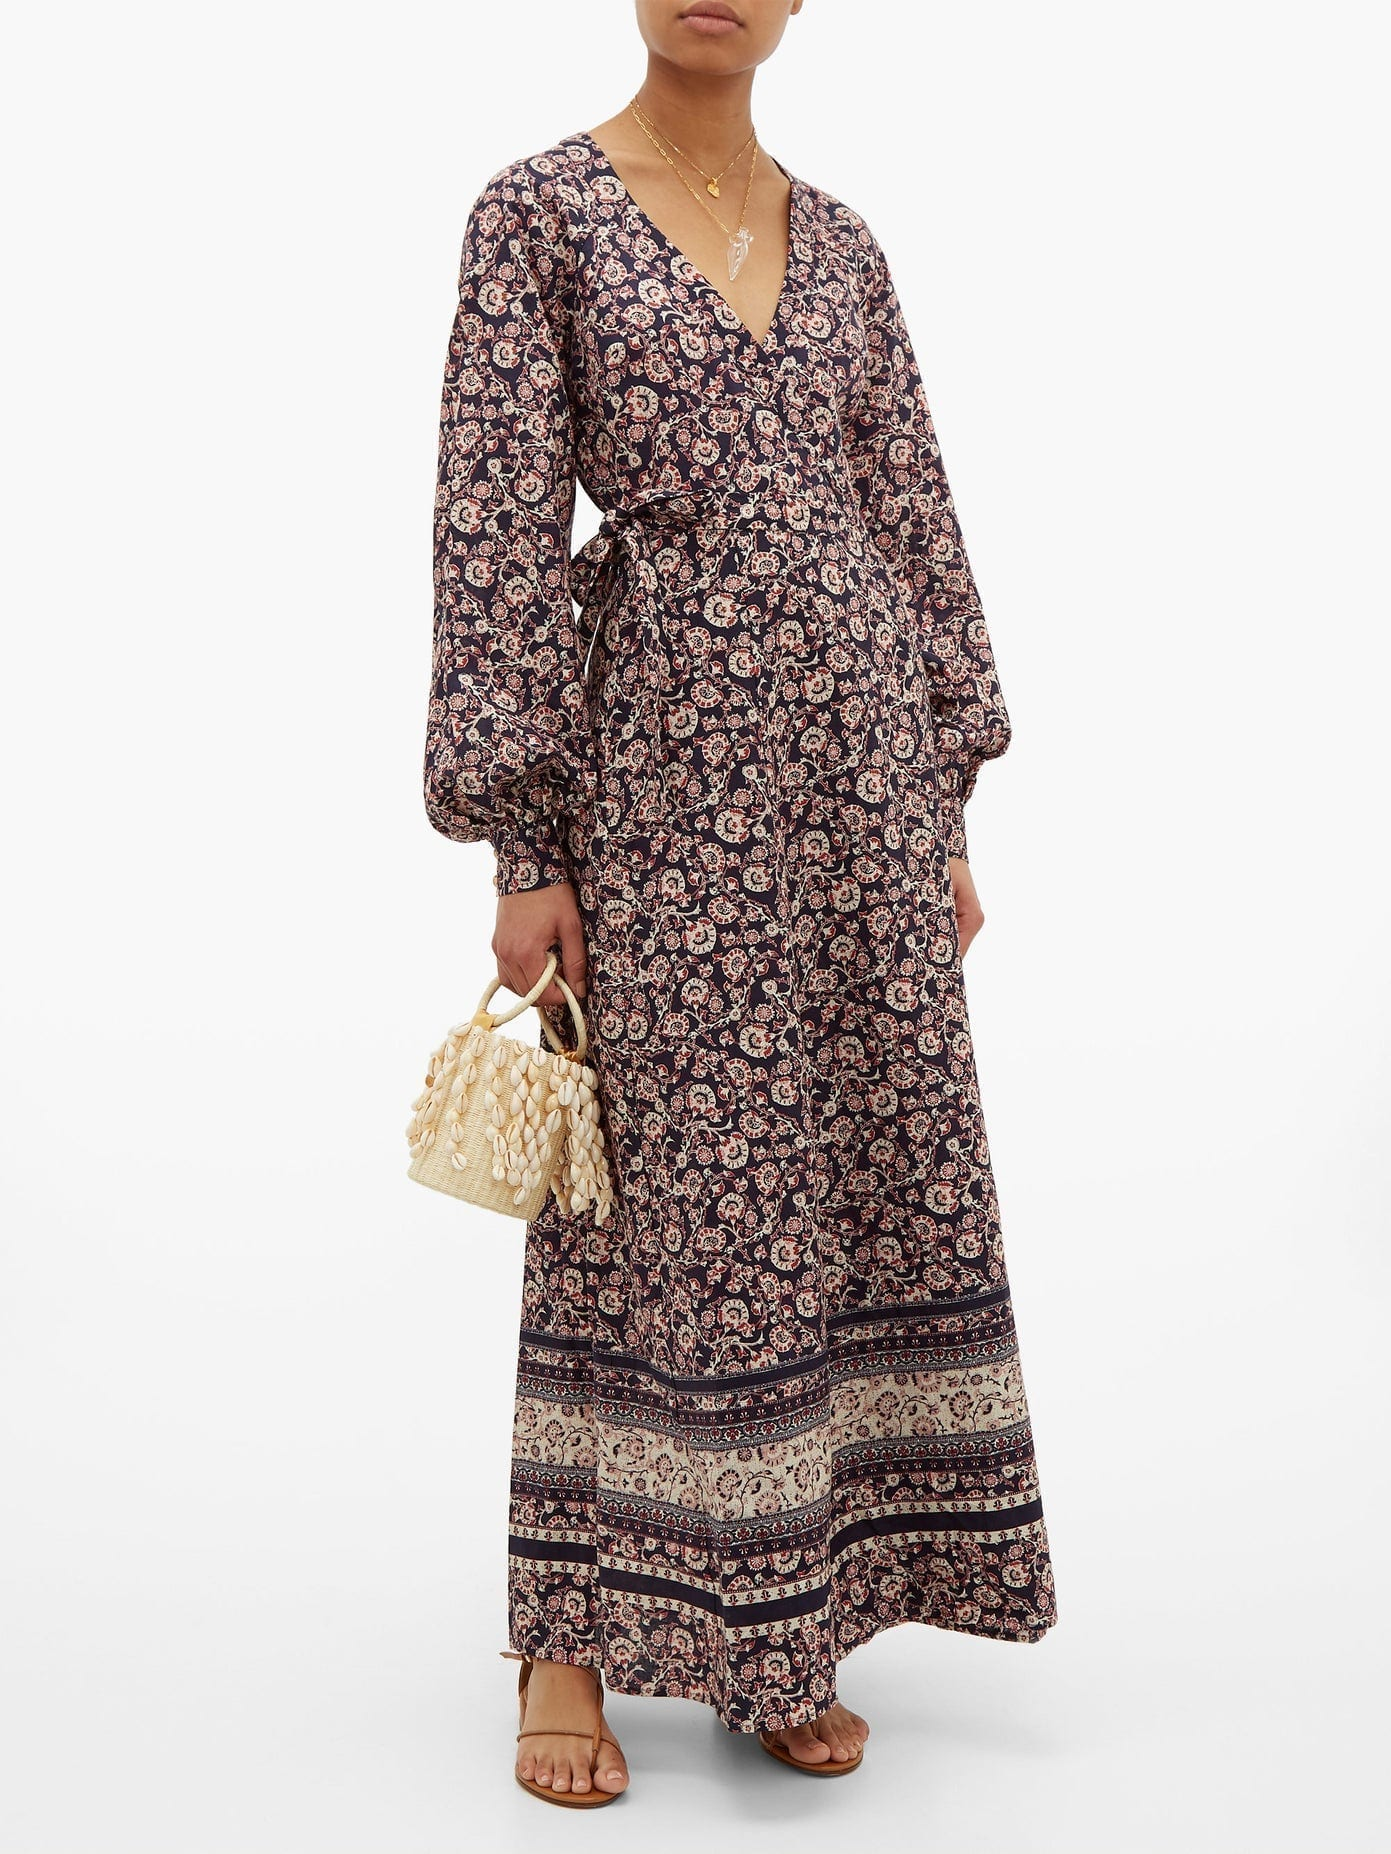 THE UPSIDE Kate Paisley And Floral Linen-blend Wrap Dress